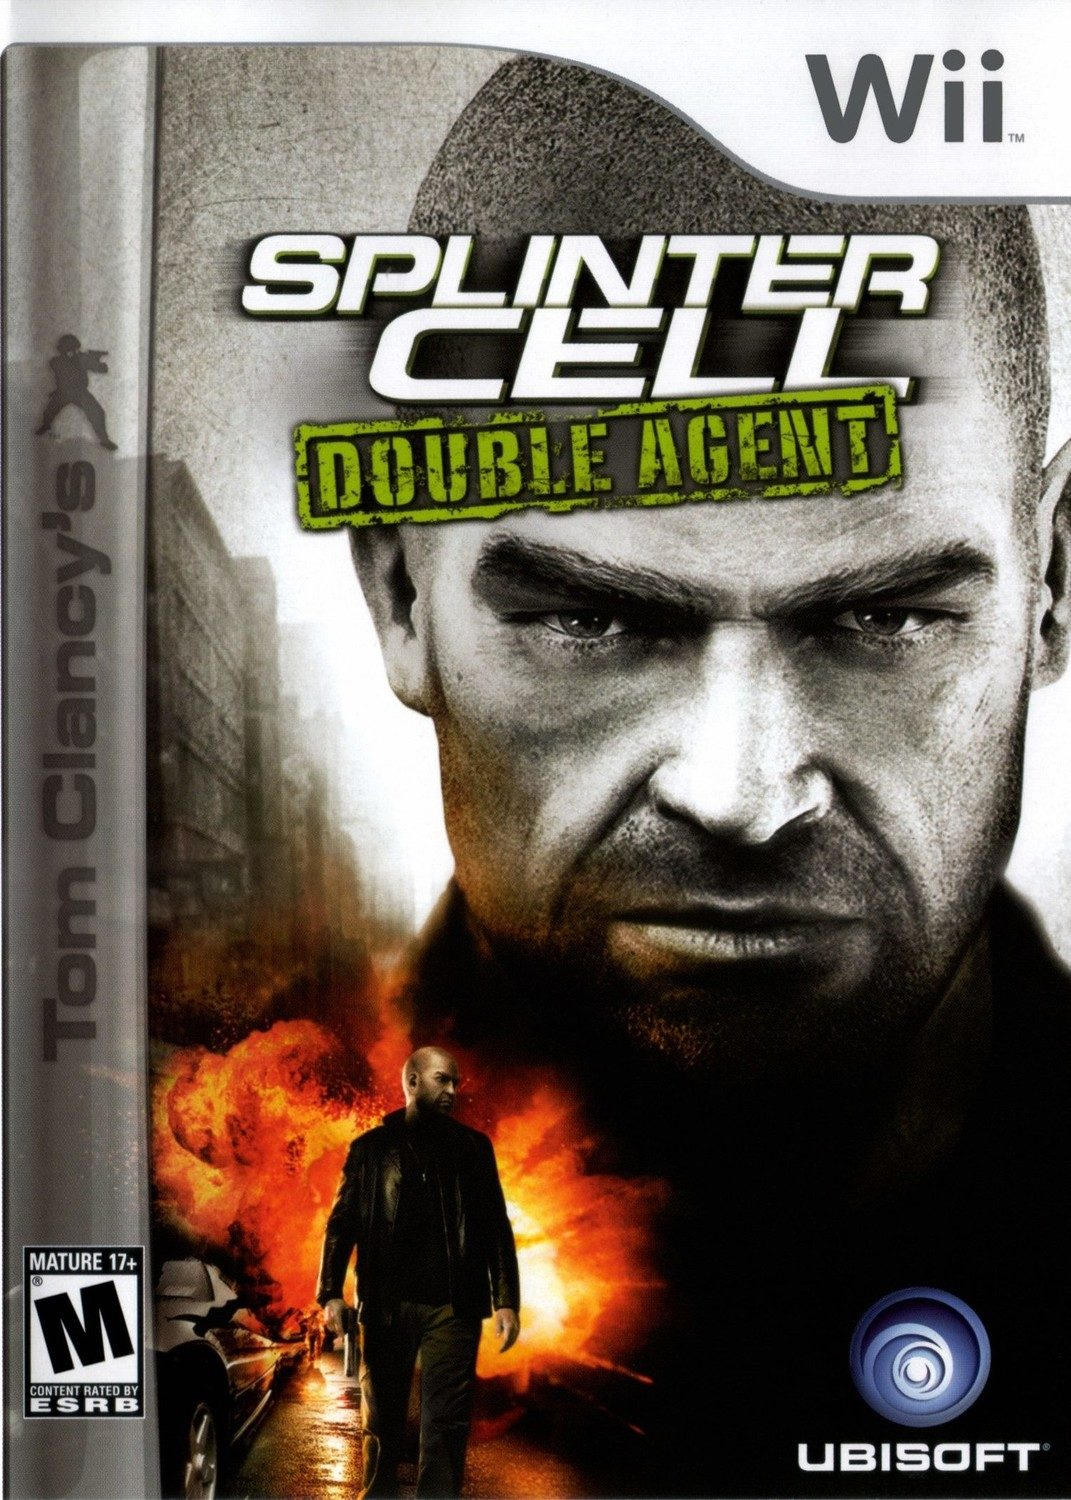 tom clancy's splinter cell: double agent - nintendo wii game